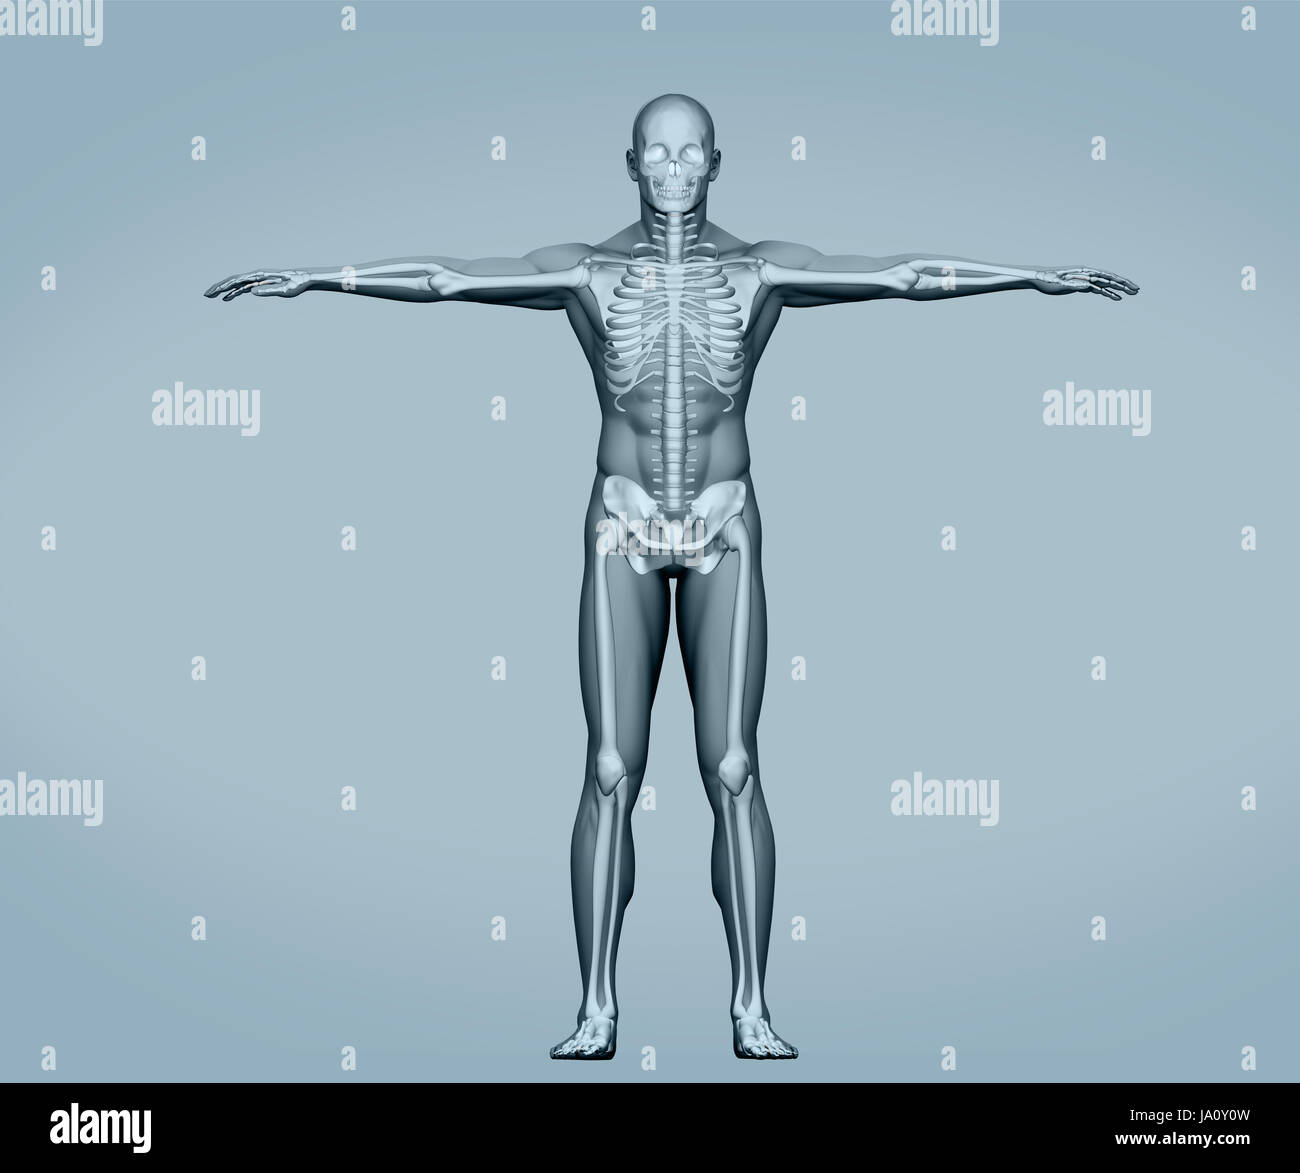 Bones Outstretched Stockfotos & Bones Outstretched Bilder - Alamy